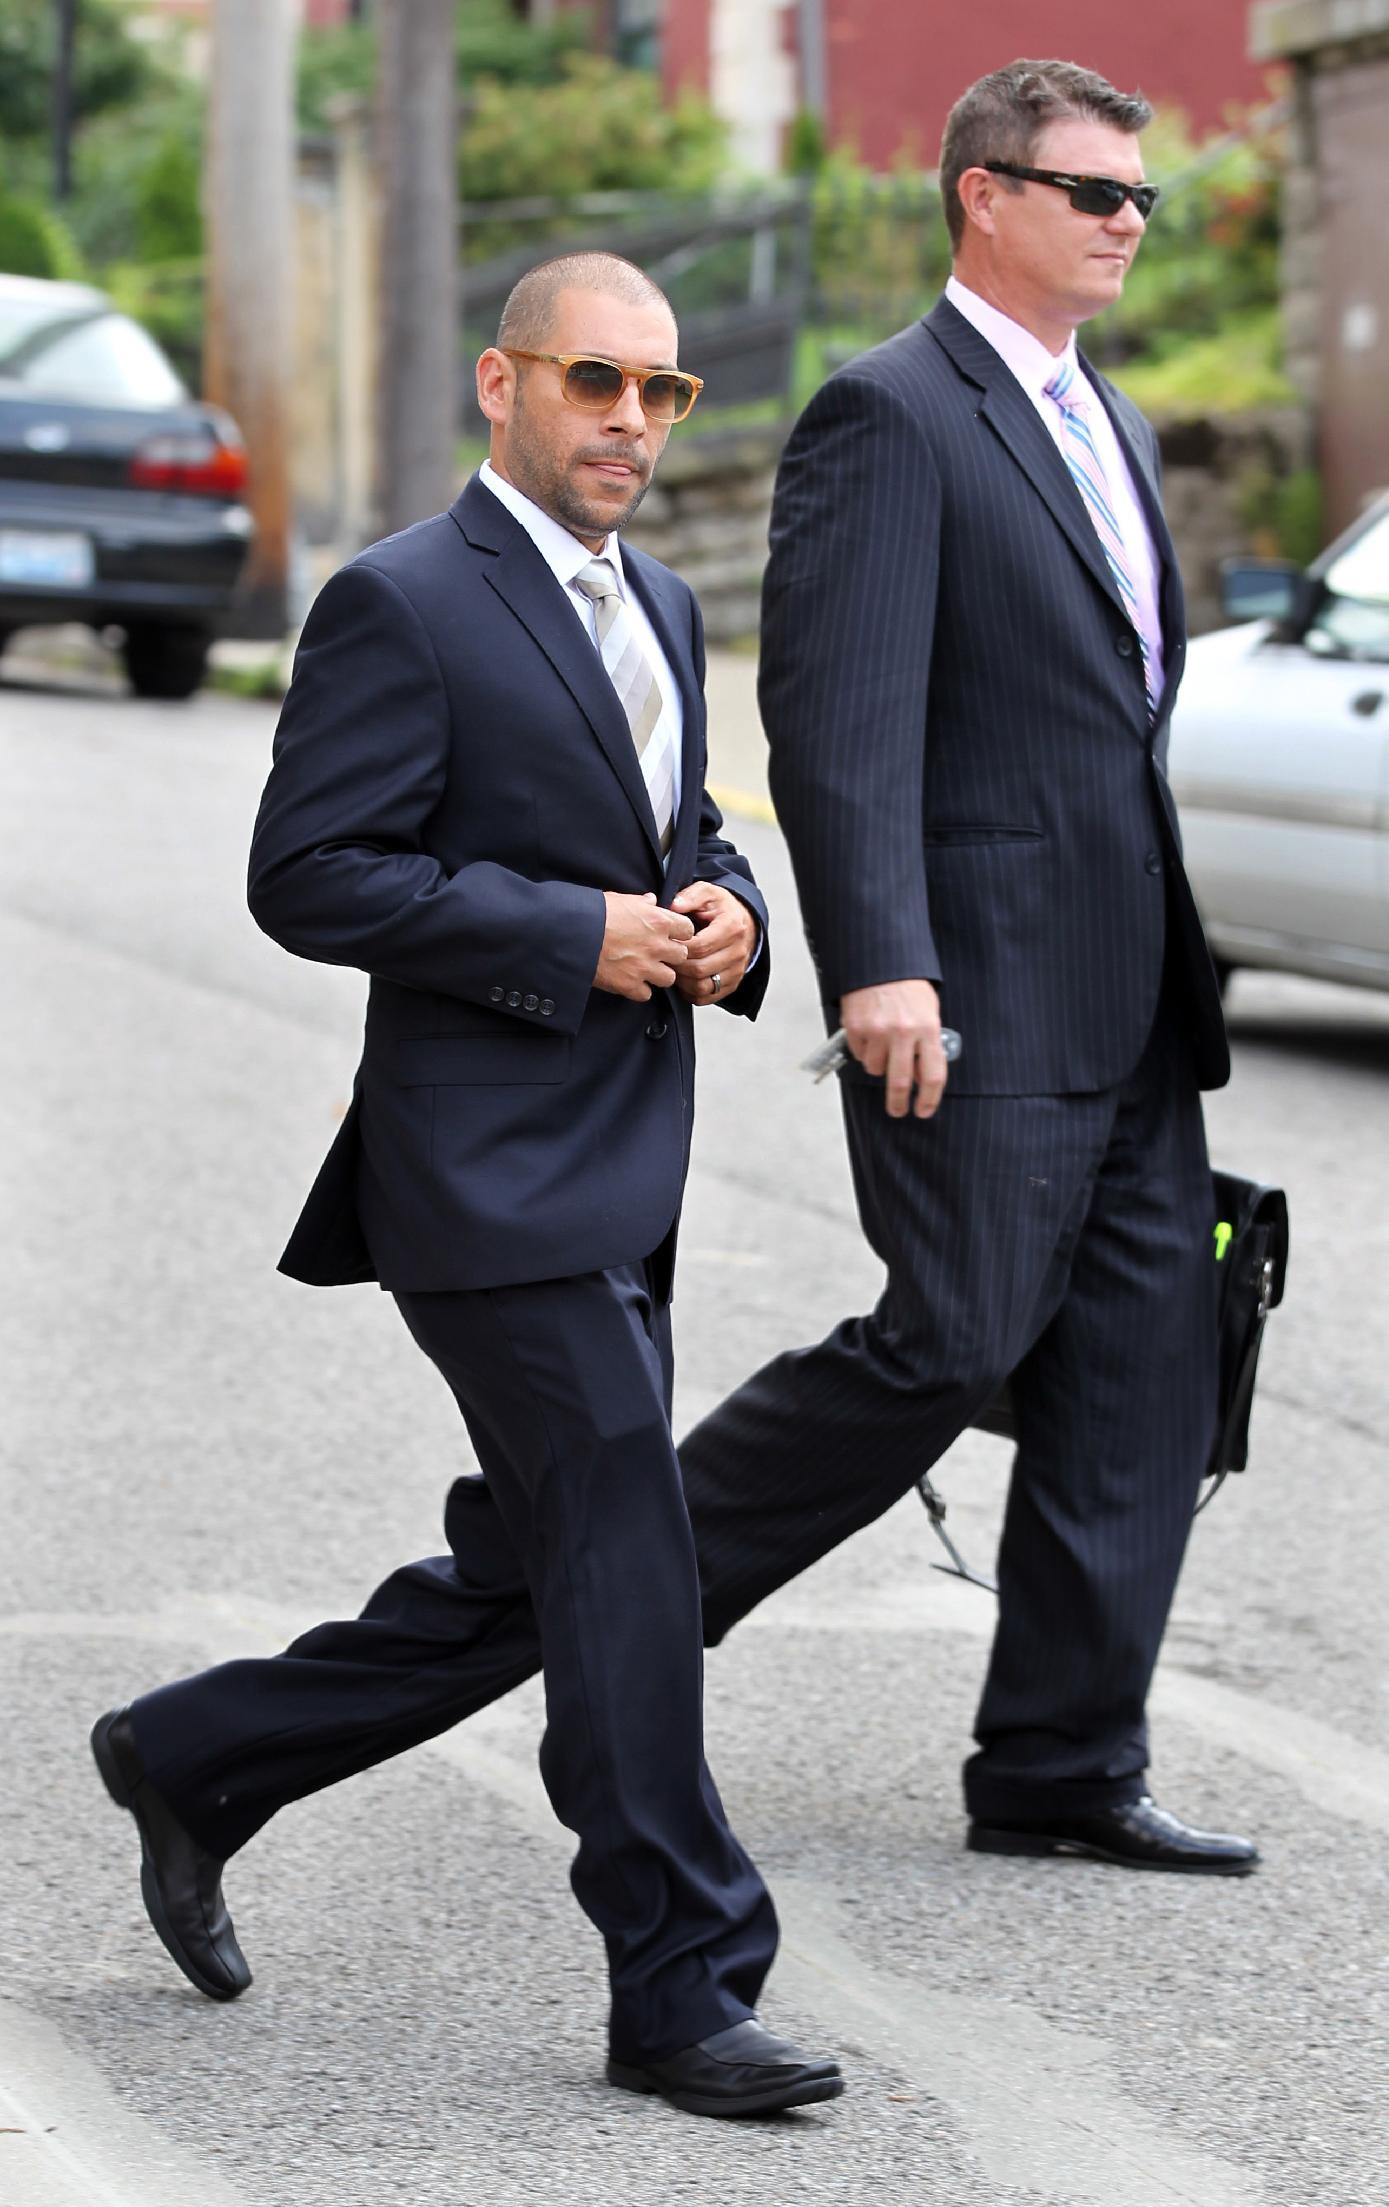 FILE - This photo made July 11, 2013, shows Nik Richie, left, owner of the gossip website TheDirty.com, leaving the Federal Courthouse in Covington, Ky., with his lawyer, David Gingra, after a jury awarded Sarah Jones $338,000 in her defamation lawsuit against the website. (AP Photo/Cincinnati Enquirer, Patrick Reddy) NO SALES